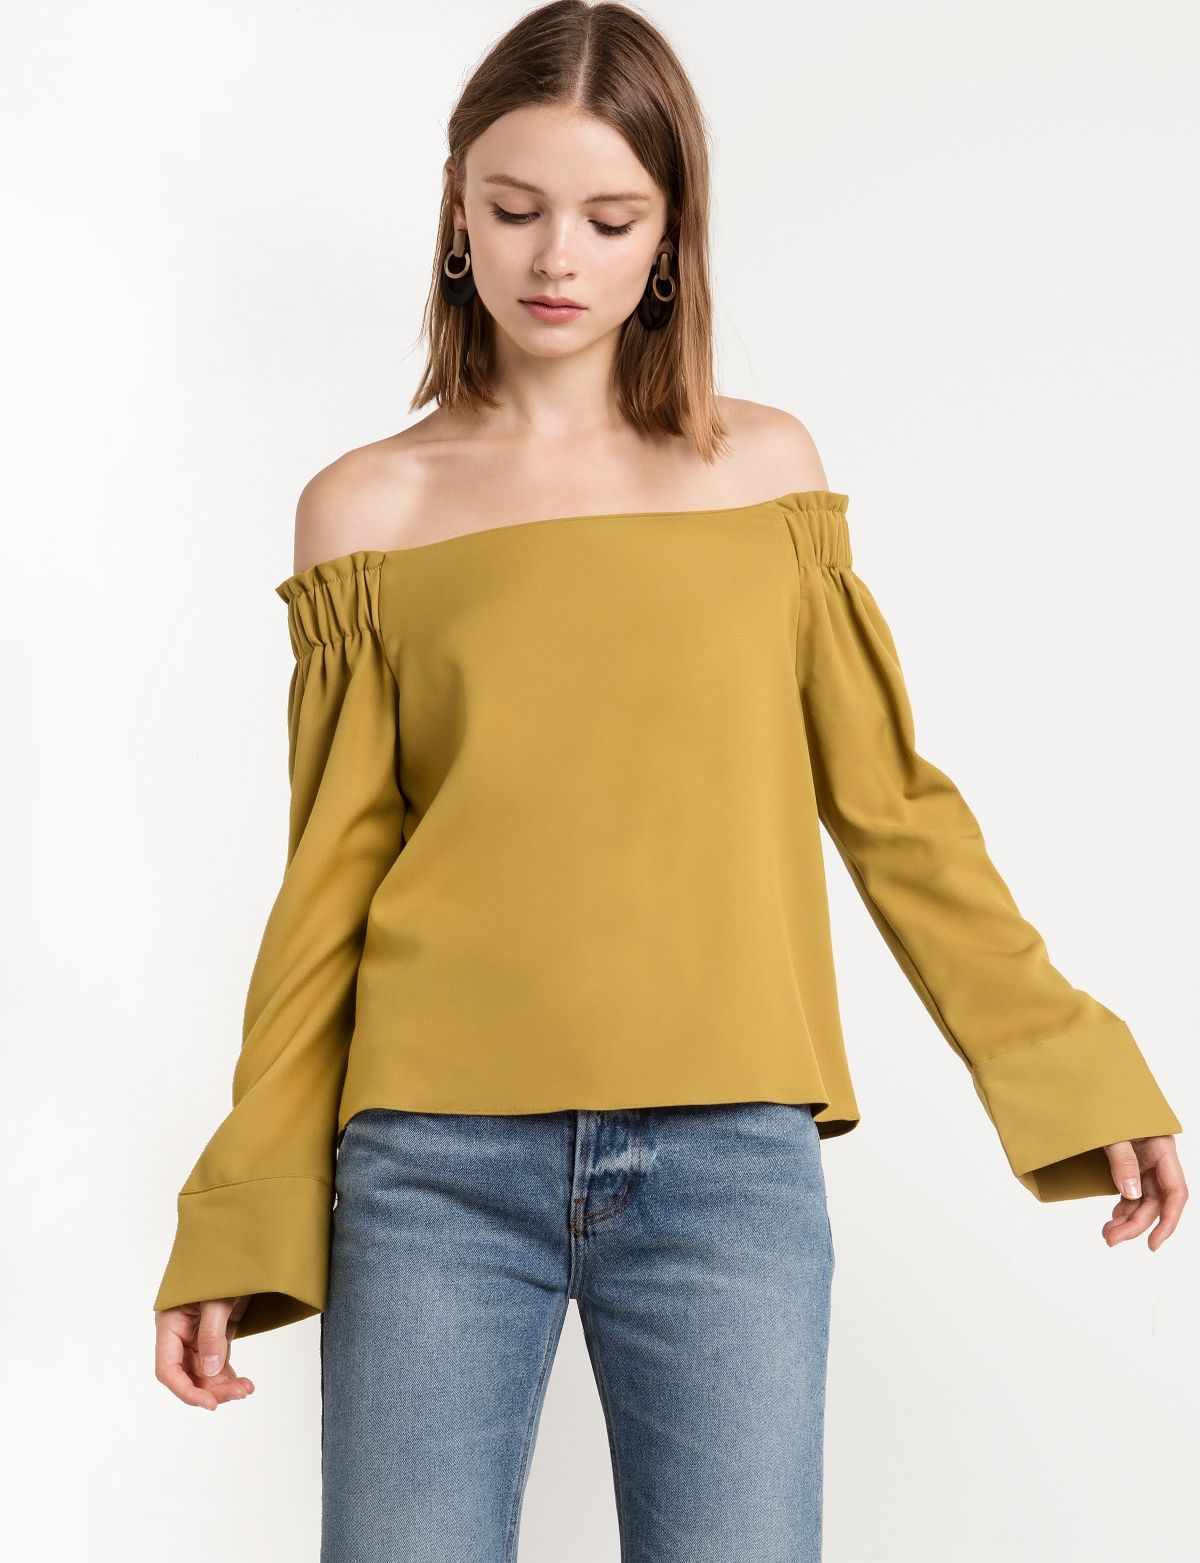 7f41d240af6504 Mustard Off the Shoulder Top